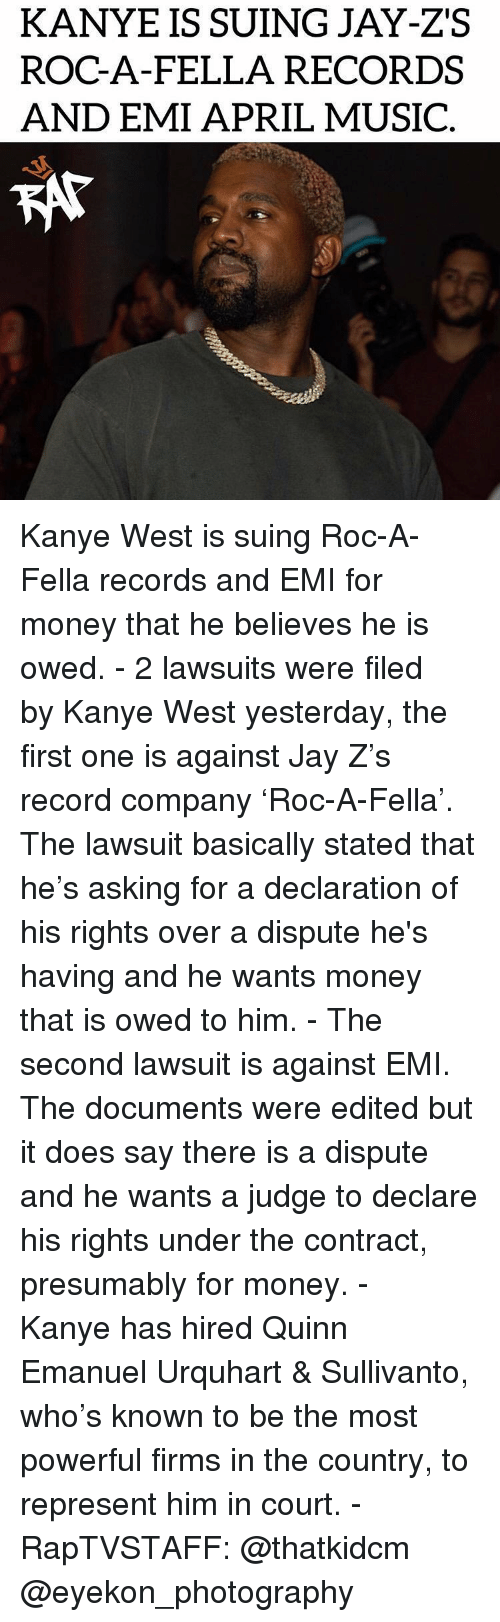 kat: KANYE IS SUING JAY-ZS  ROC-A-FELLA RECORDS  AND EMI APRIL MUSIC  KAT Kanye West is suing Roc-A-Fella records and EMI for money that he believes he is owed. - 2 lawsuits were filed by Kanye West yesterday, the first one is against Jay Z's record company 'Roc-A-Fella'. The lawsuit basically stated that he's asking for a declaration of his rights over a dispute he's having and he wants money that is owed to him. - The second lawsuit is against EMI. The documents were edited but it does say there is a dispute and he wants a judge to declare his rights under the contract, presumably for money. - Kanye has hired Quinn Emanuel Urquhart & Sullivanto, who's known to be the most powerful firms in the country, to represent him in court. - RapTVSTAFF: @thatkidcm @eyekon_photography